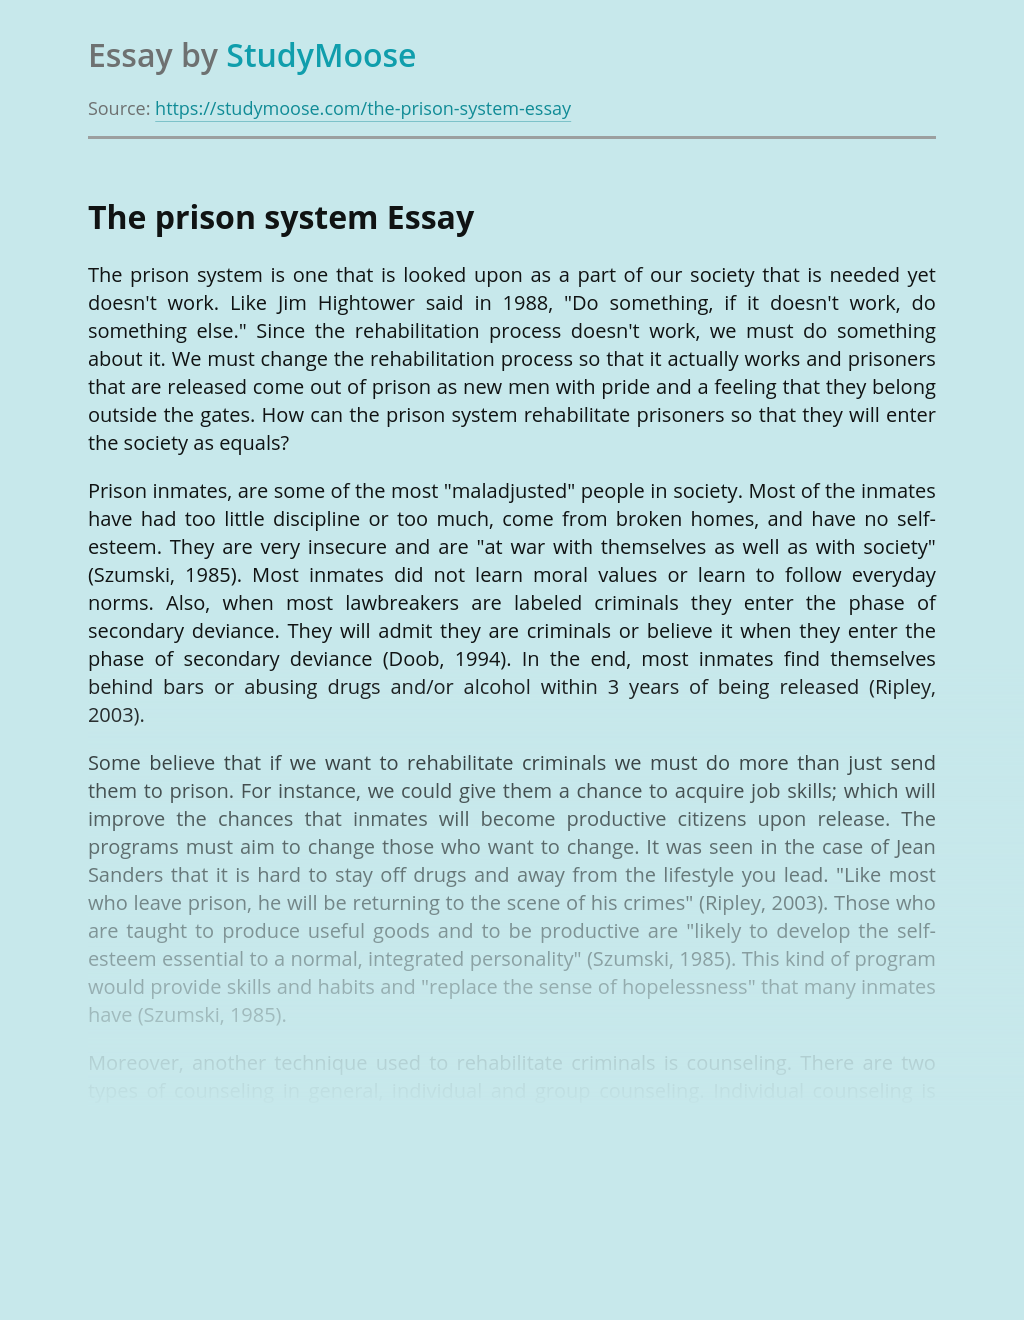 The Prison System in Our Society